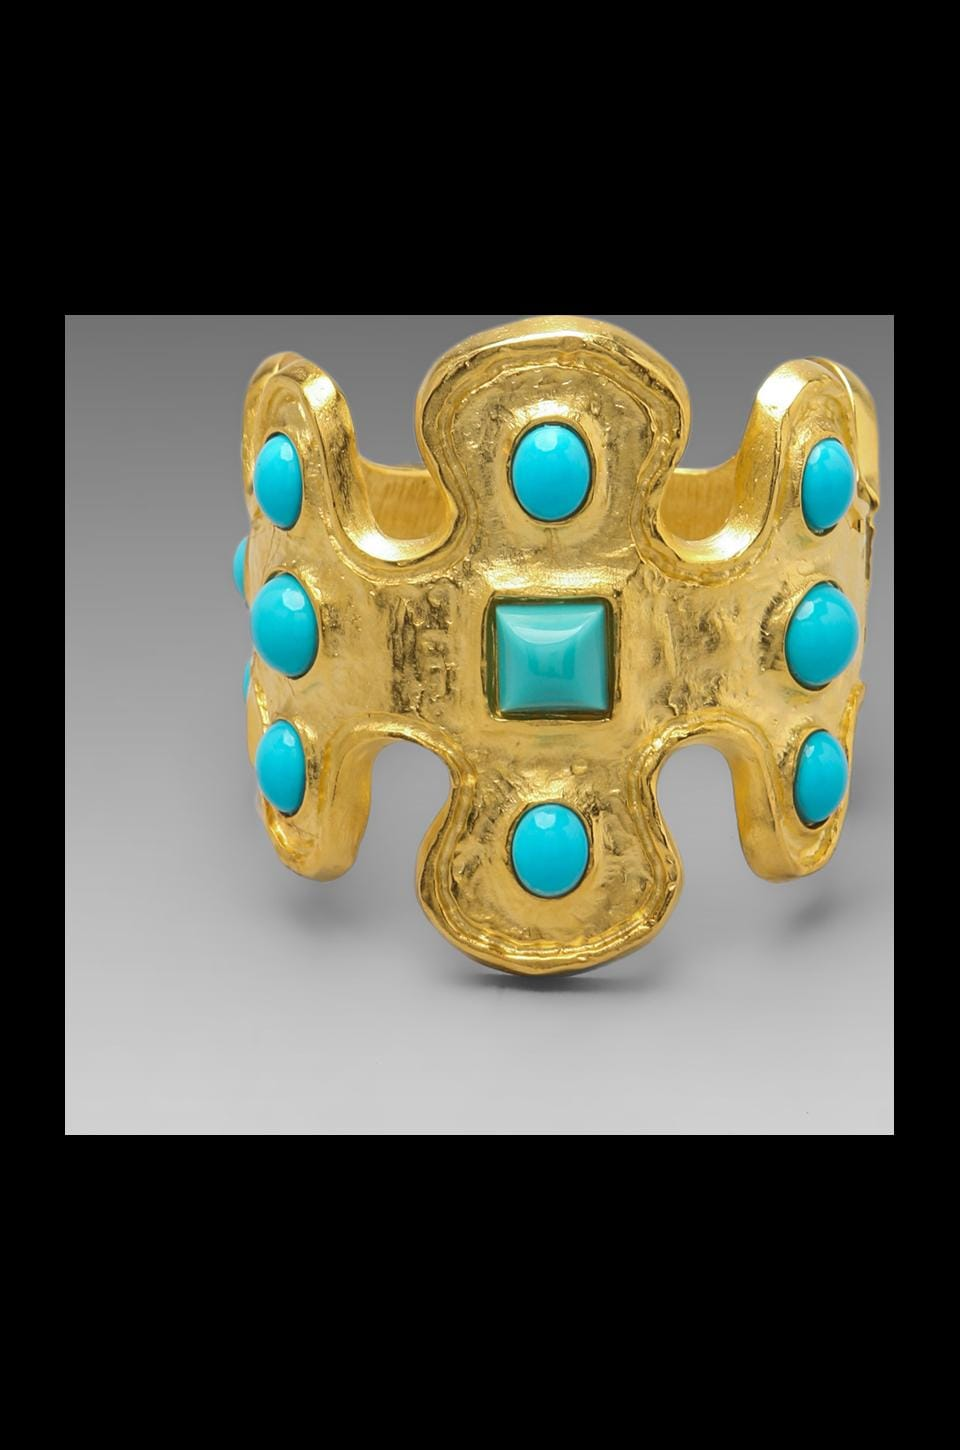 Kenneth Jay Lane Odd Shape Cuff in Satin Gold/Turquoise